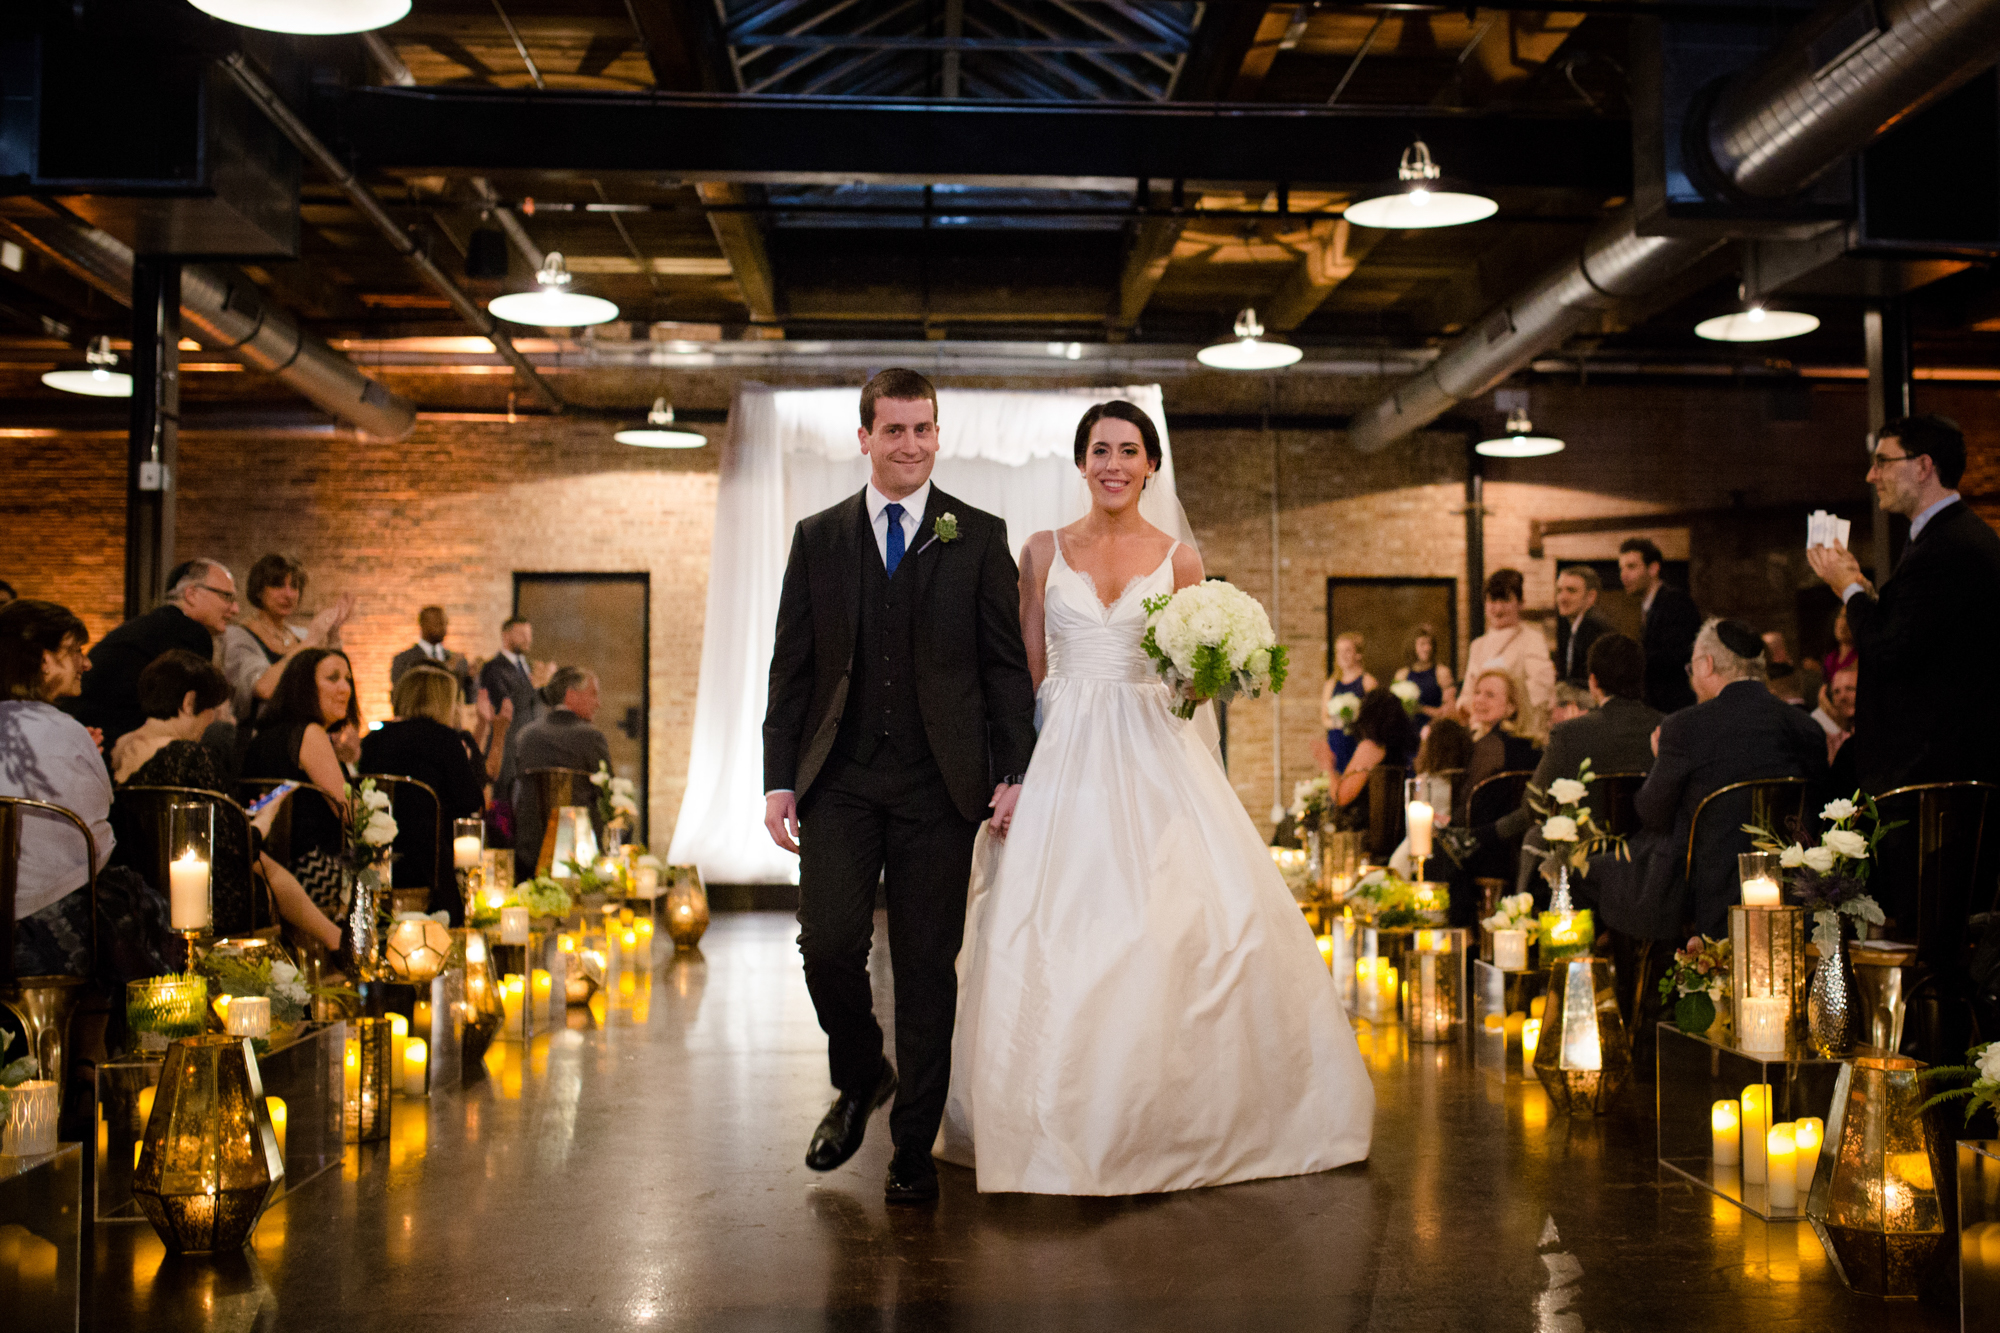 Bride and groom exit ceremony at Morgan Manufacturing in Chicago